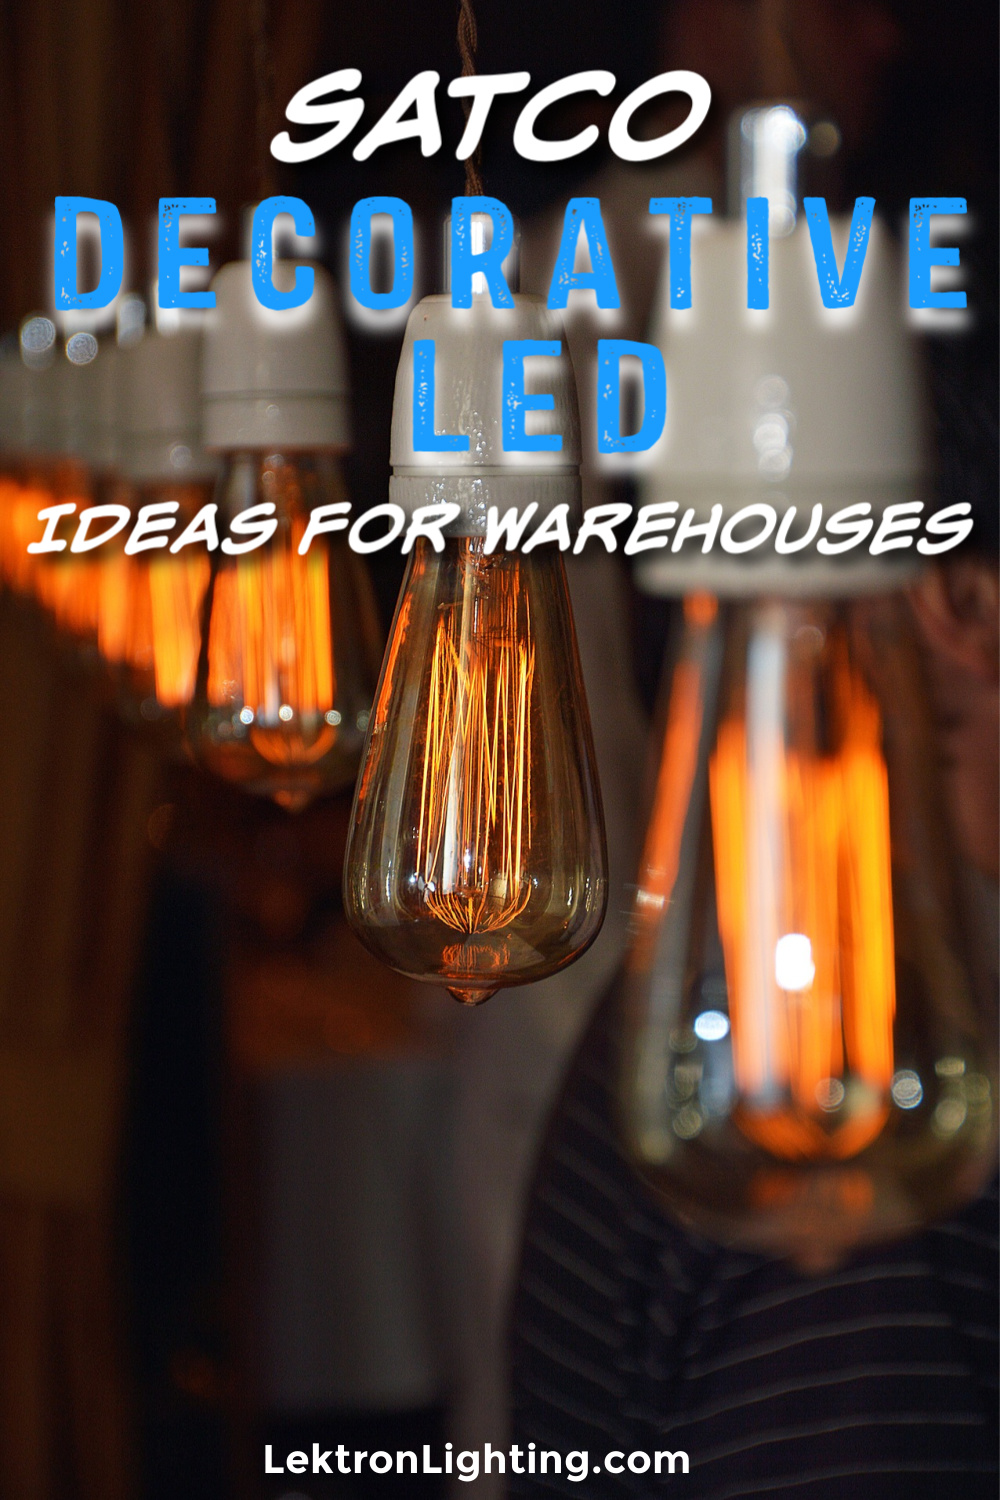 You could use Satco decorative LED bulbs ideas to help liven up certain parts of your warehouse for your employees and guests.